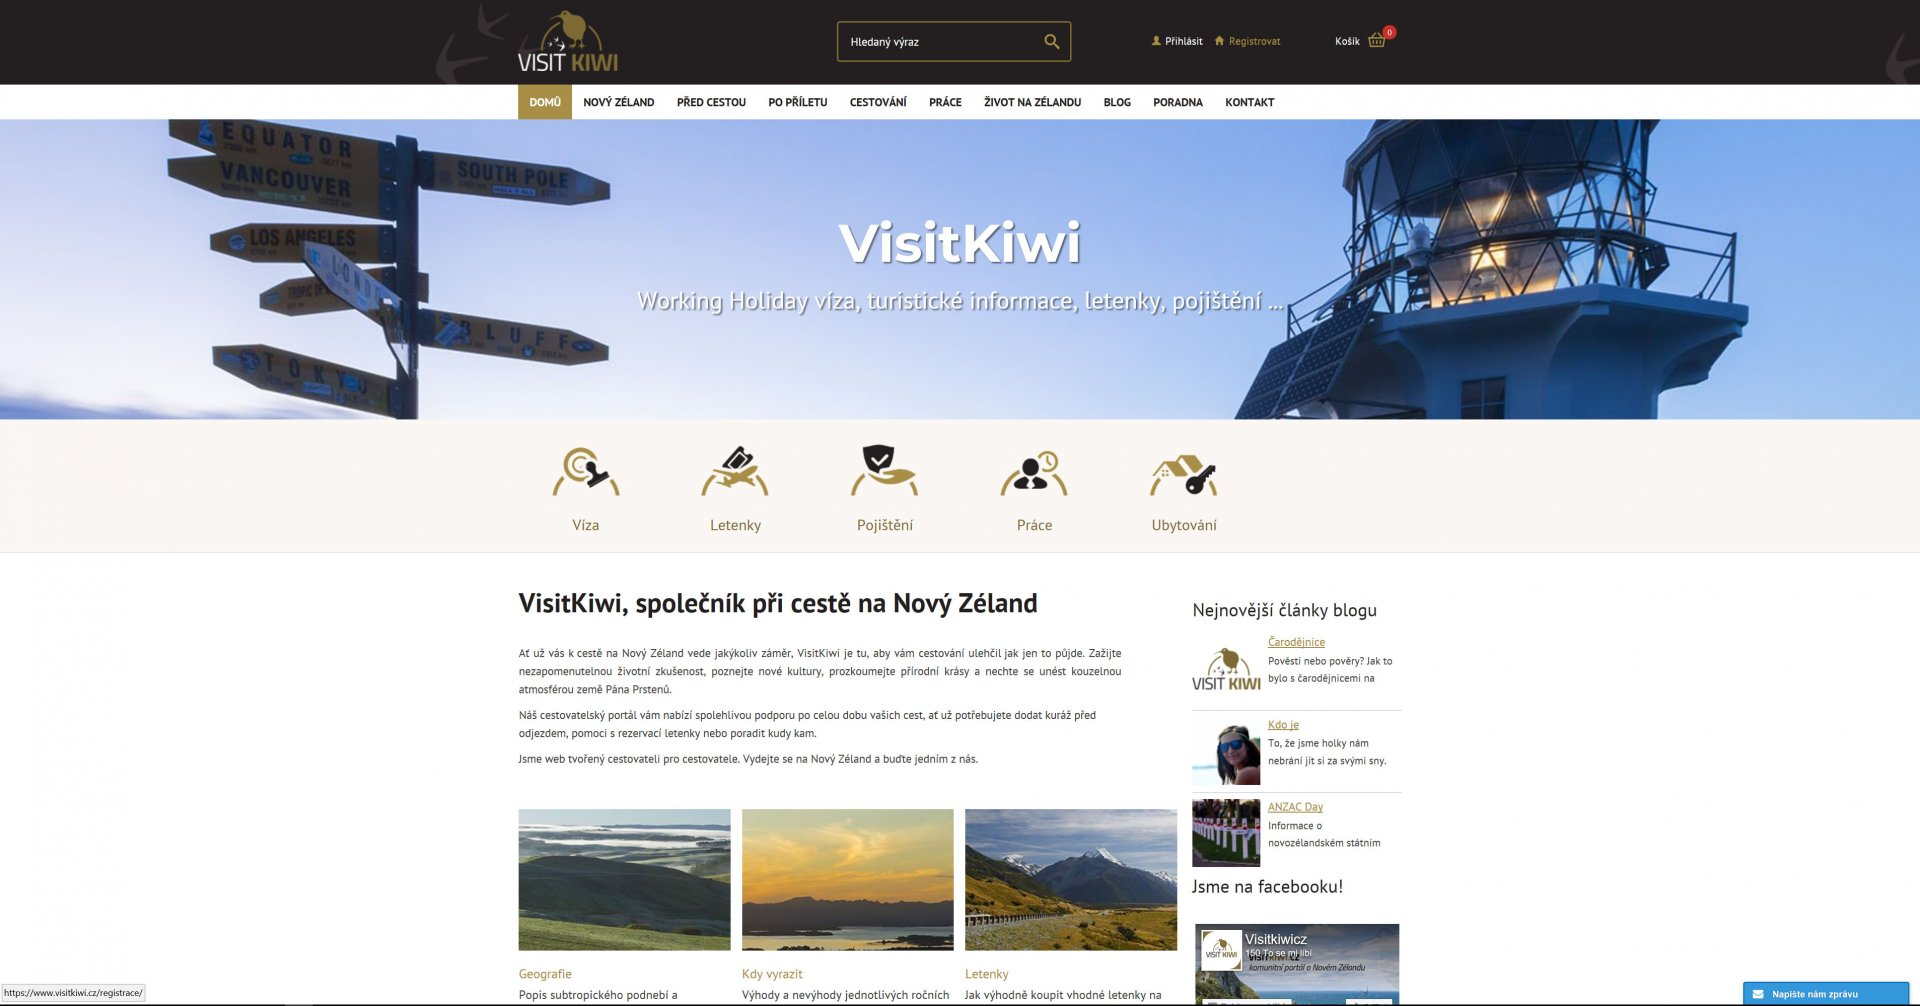 Make an account on our website at www.visitkiwi.com